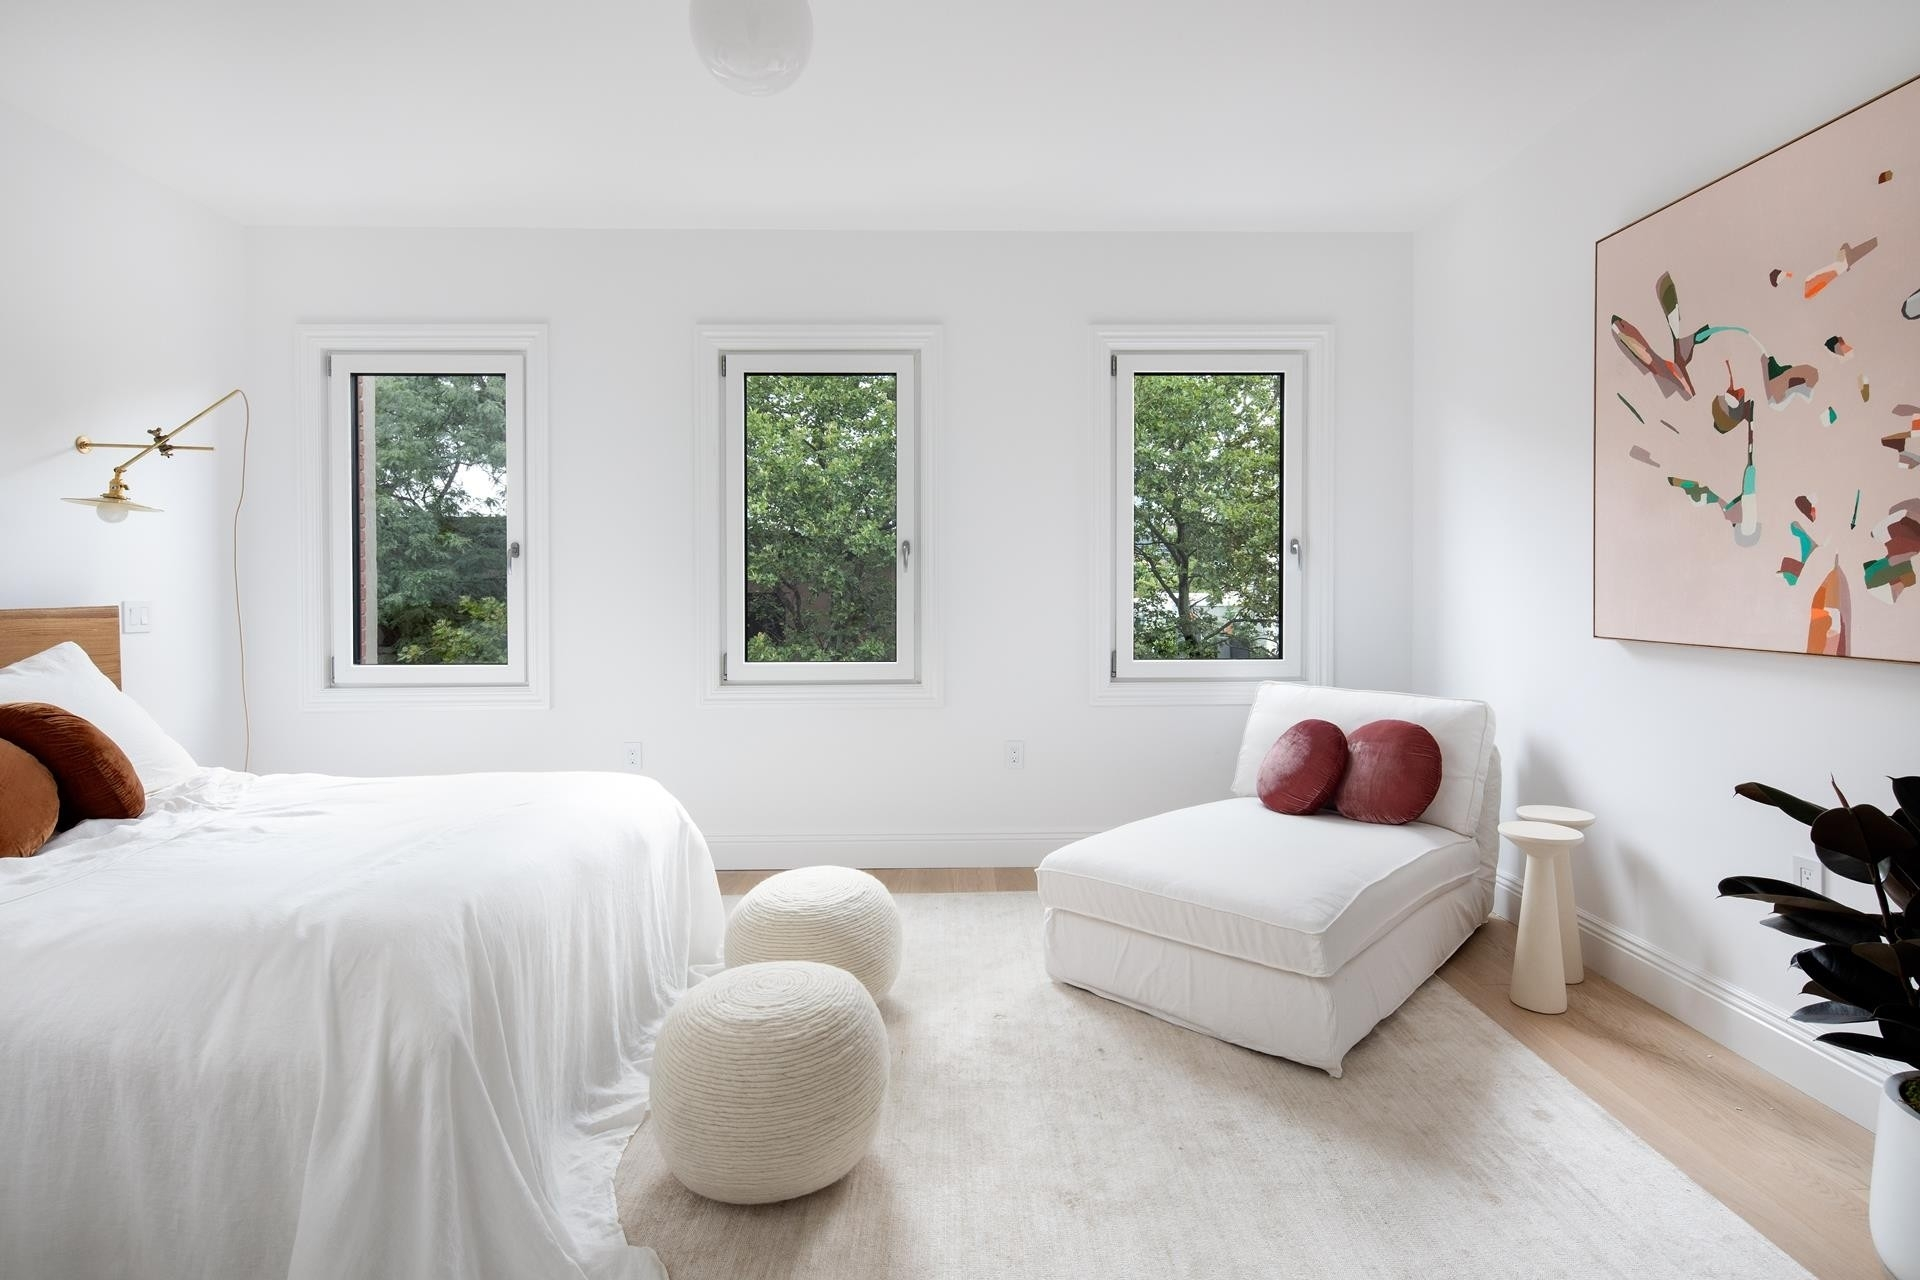 10. Single Family Townhouse for Sale at 330 SACKETT ST , TOWNHOUSE Carroll Gardens, Brooklyn, NY 11231